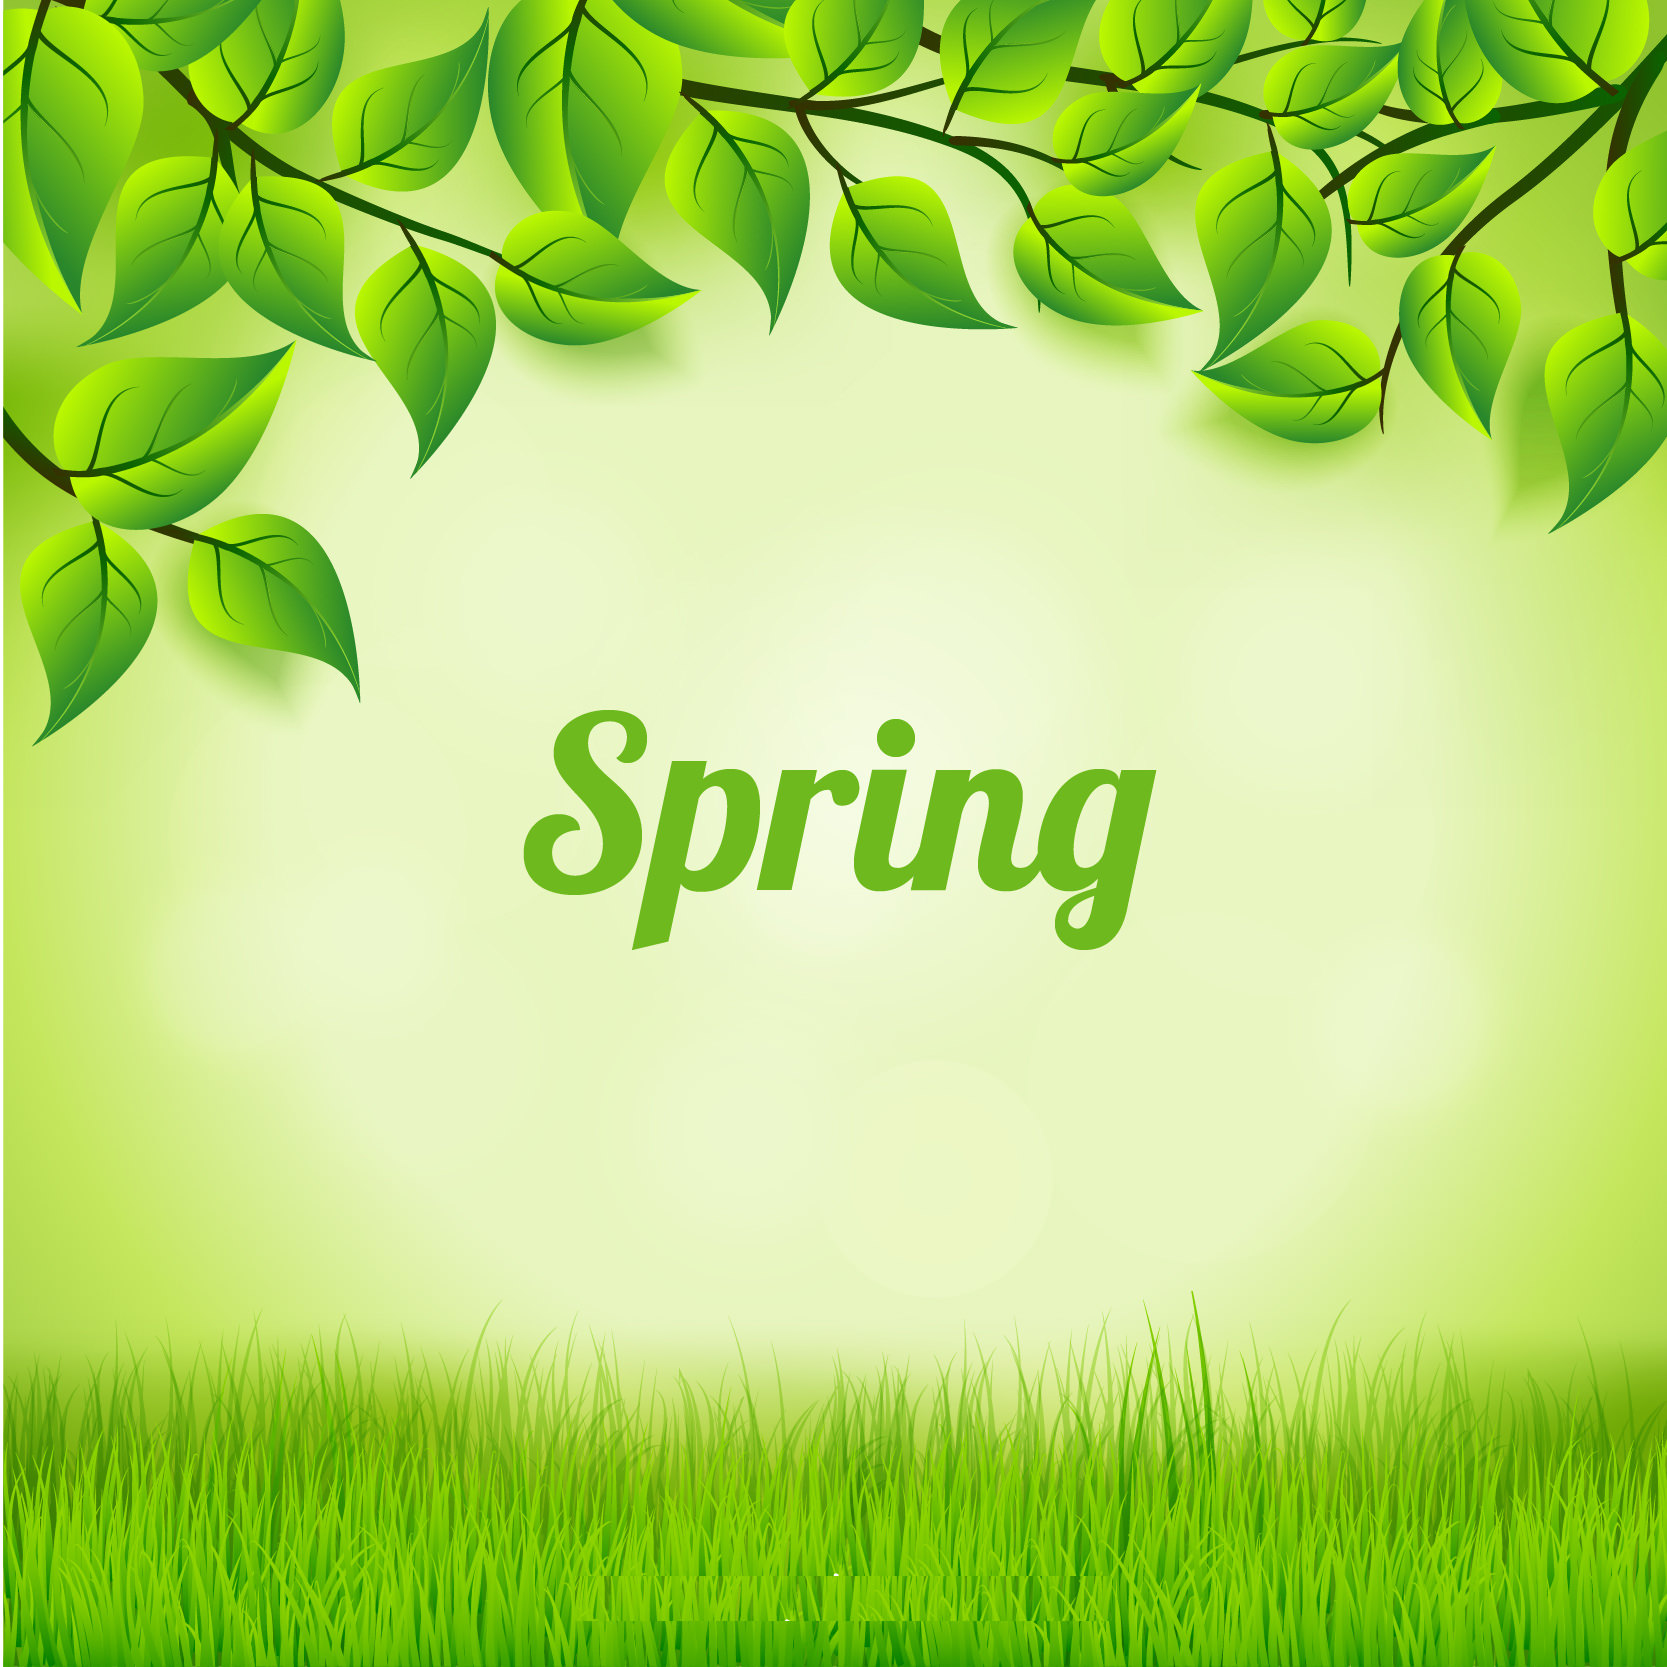 Green Leaves and Grass Background